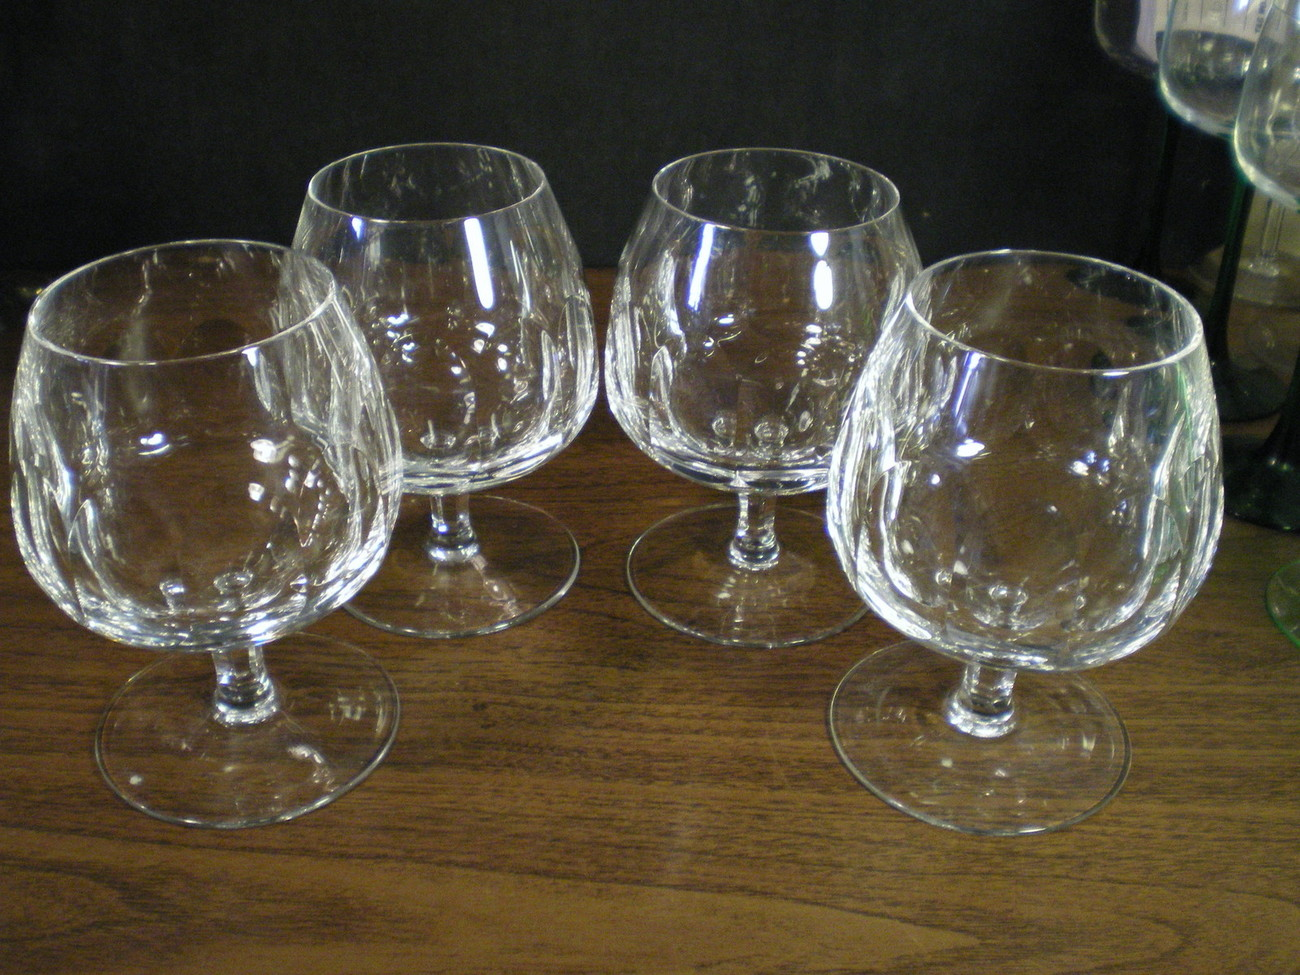 4 FANTASIC CESKCI BRANDY SNIFTERS~~these are special~~SIGNED~